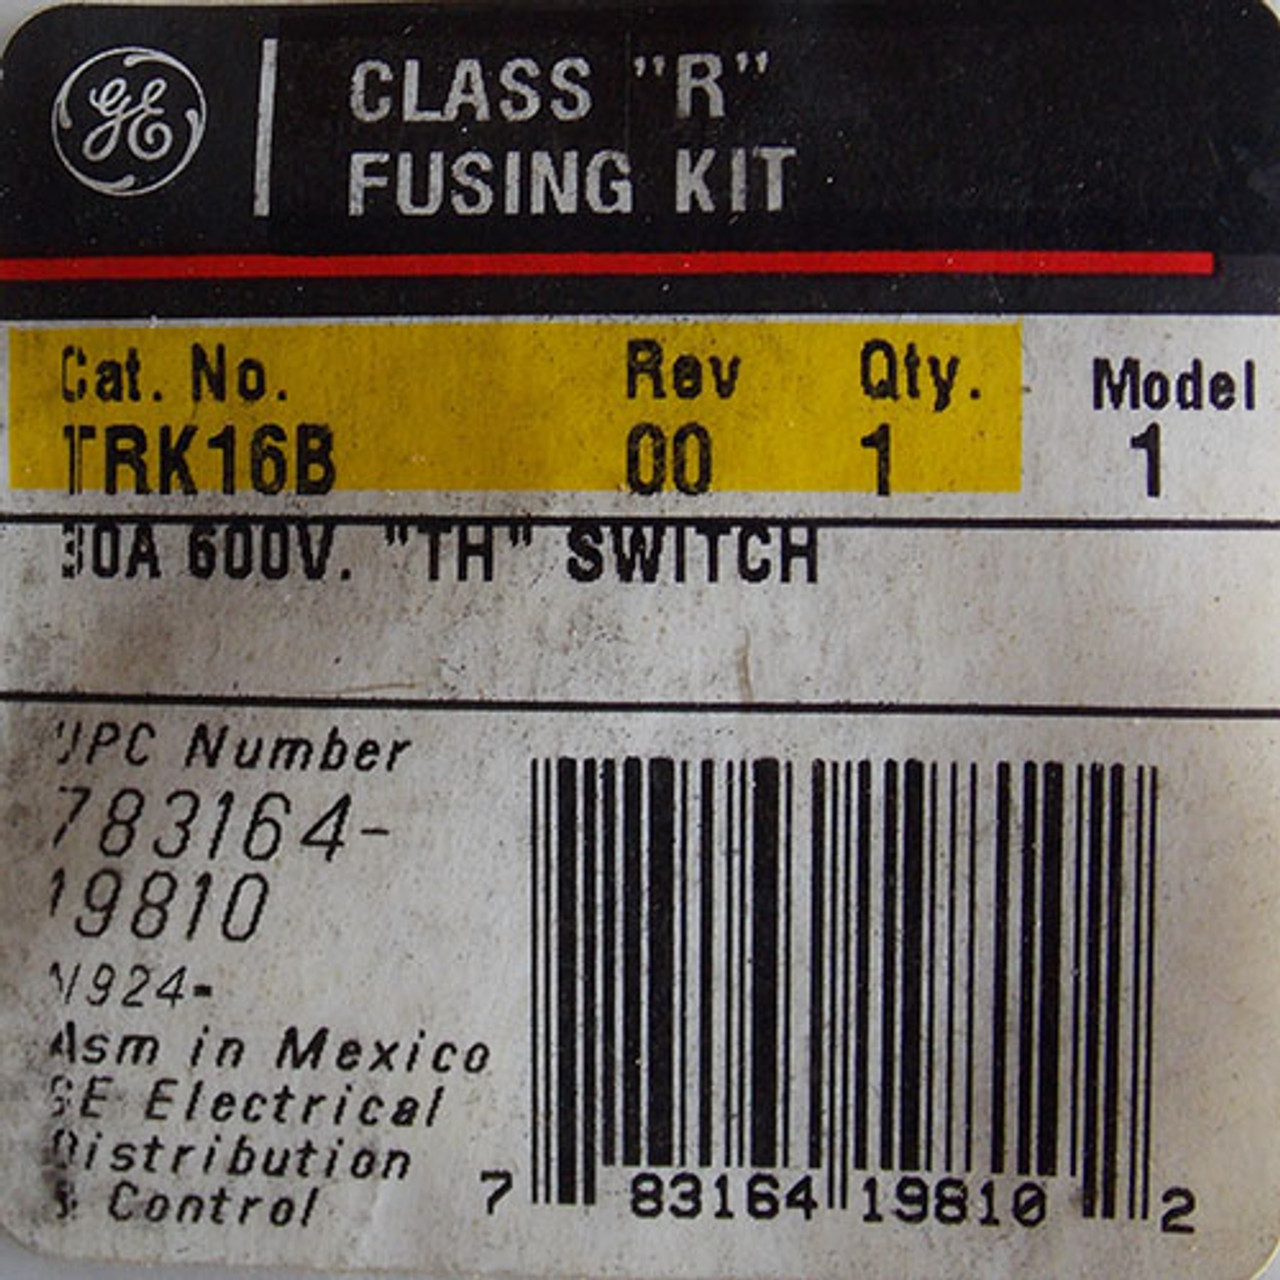 """General Electric TRK16B Class """"R"""" Fusing Kit 30 Amp 600V """"TH"""" Switch - New"""